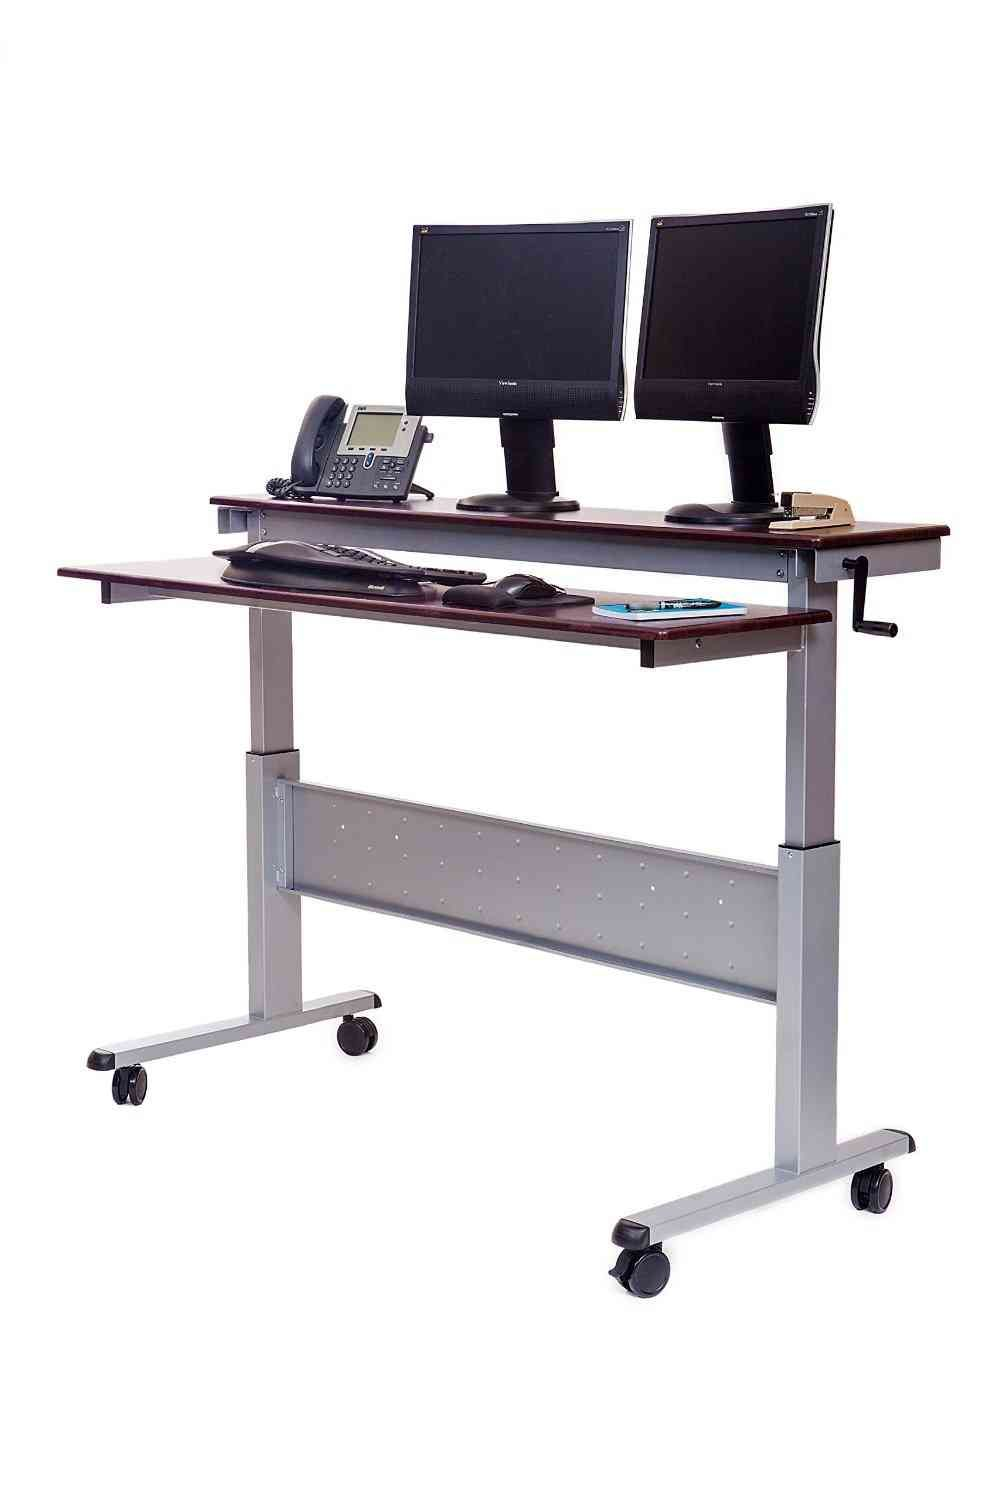 Standing Desk Amazon Stand Up Desk Ikea Standing Desk Adjustable Height Standing Desk